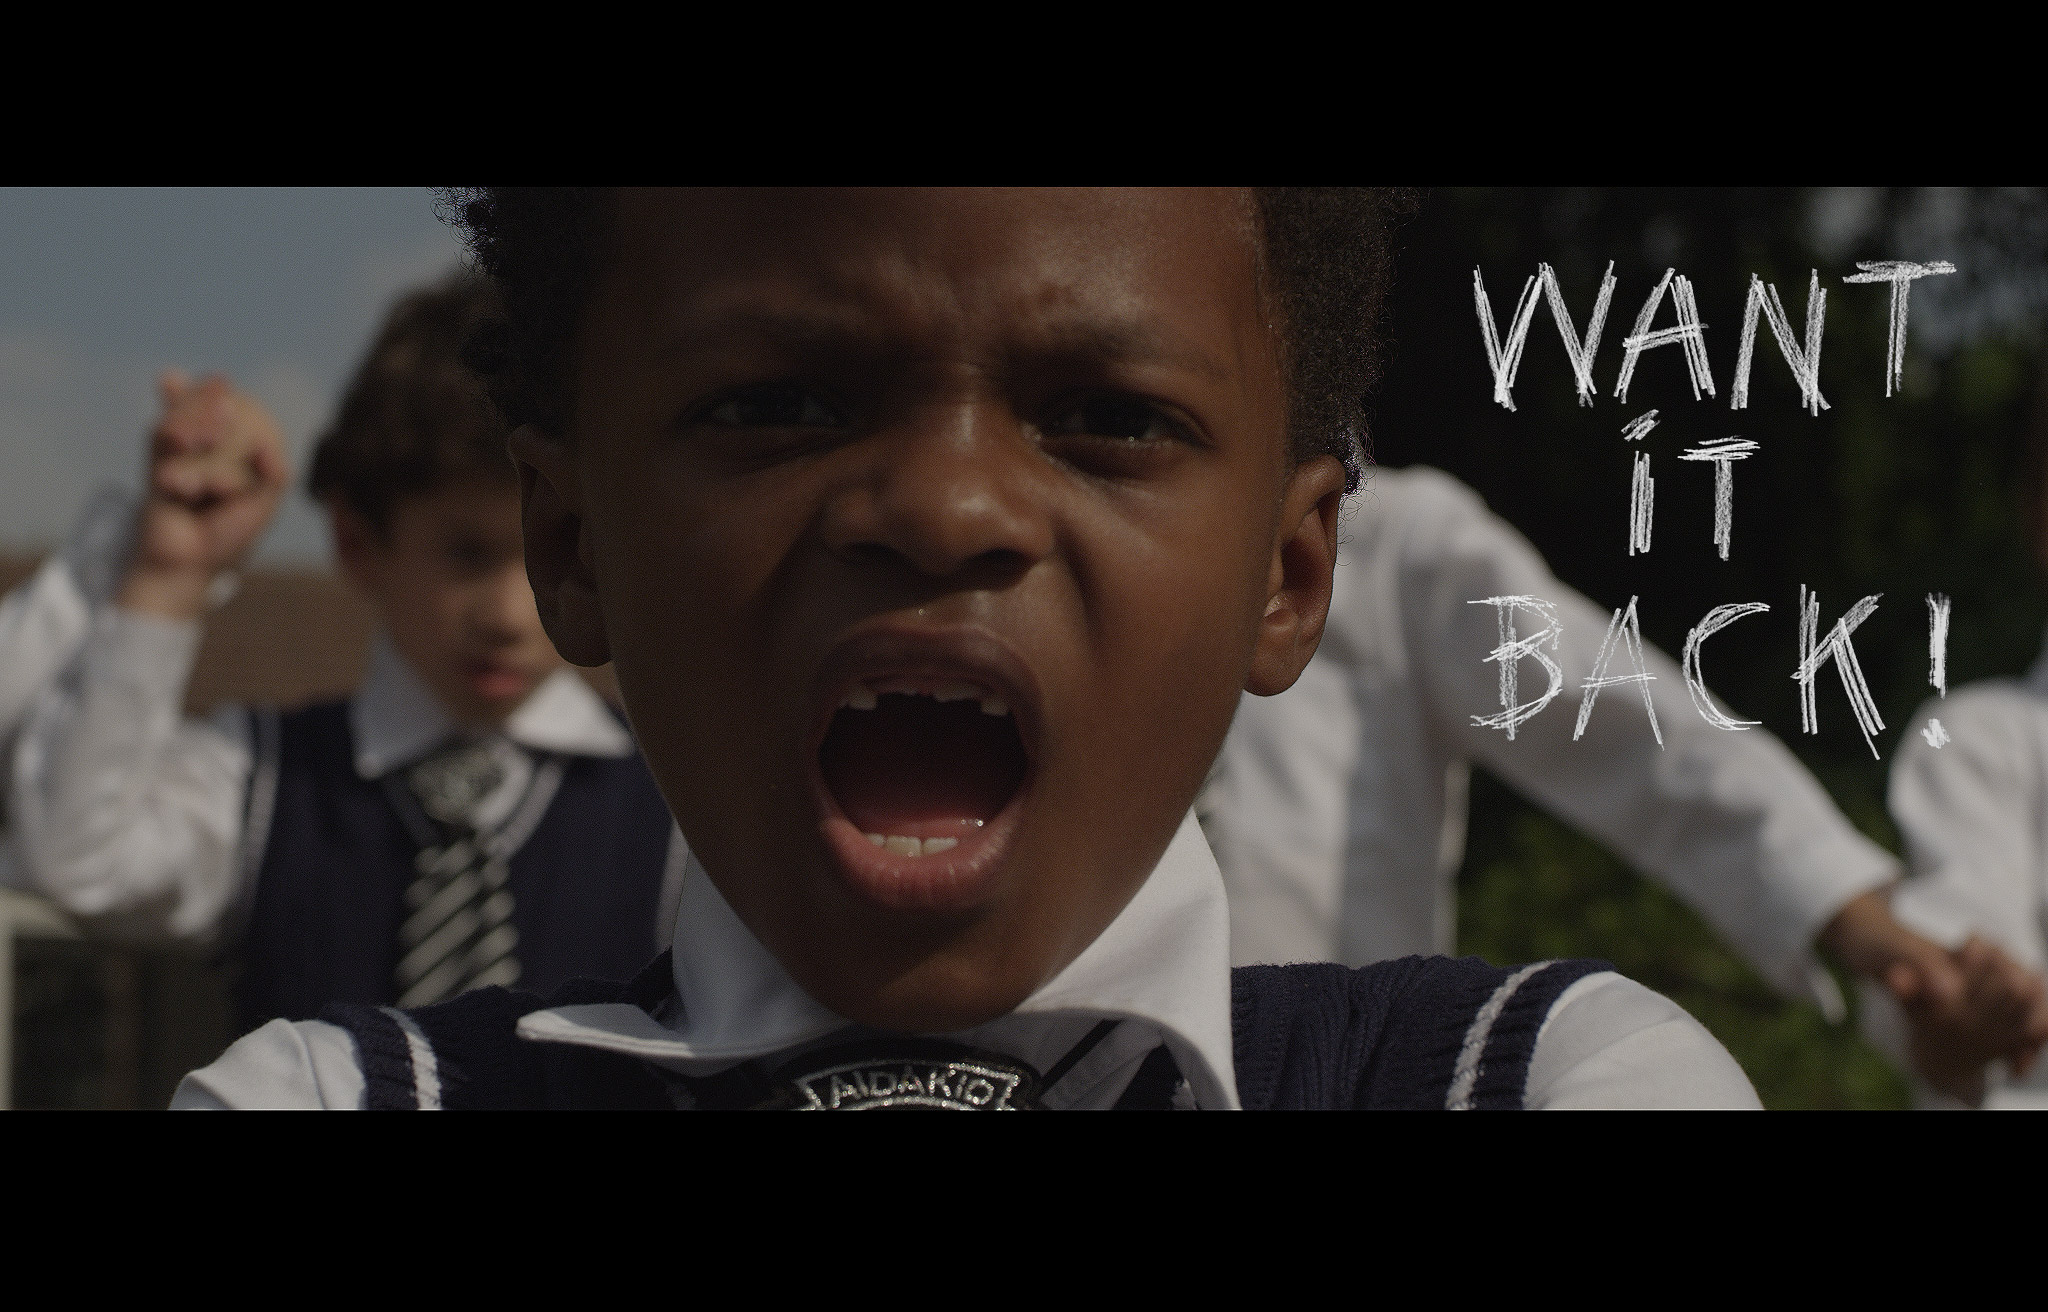 "New Music Video – GUTS Feat Patrice Bart-Williams ""Want it back"""